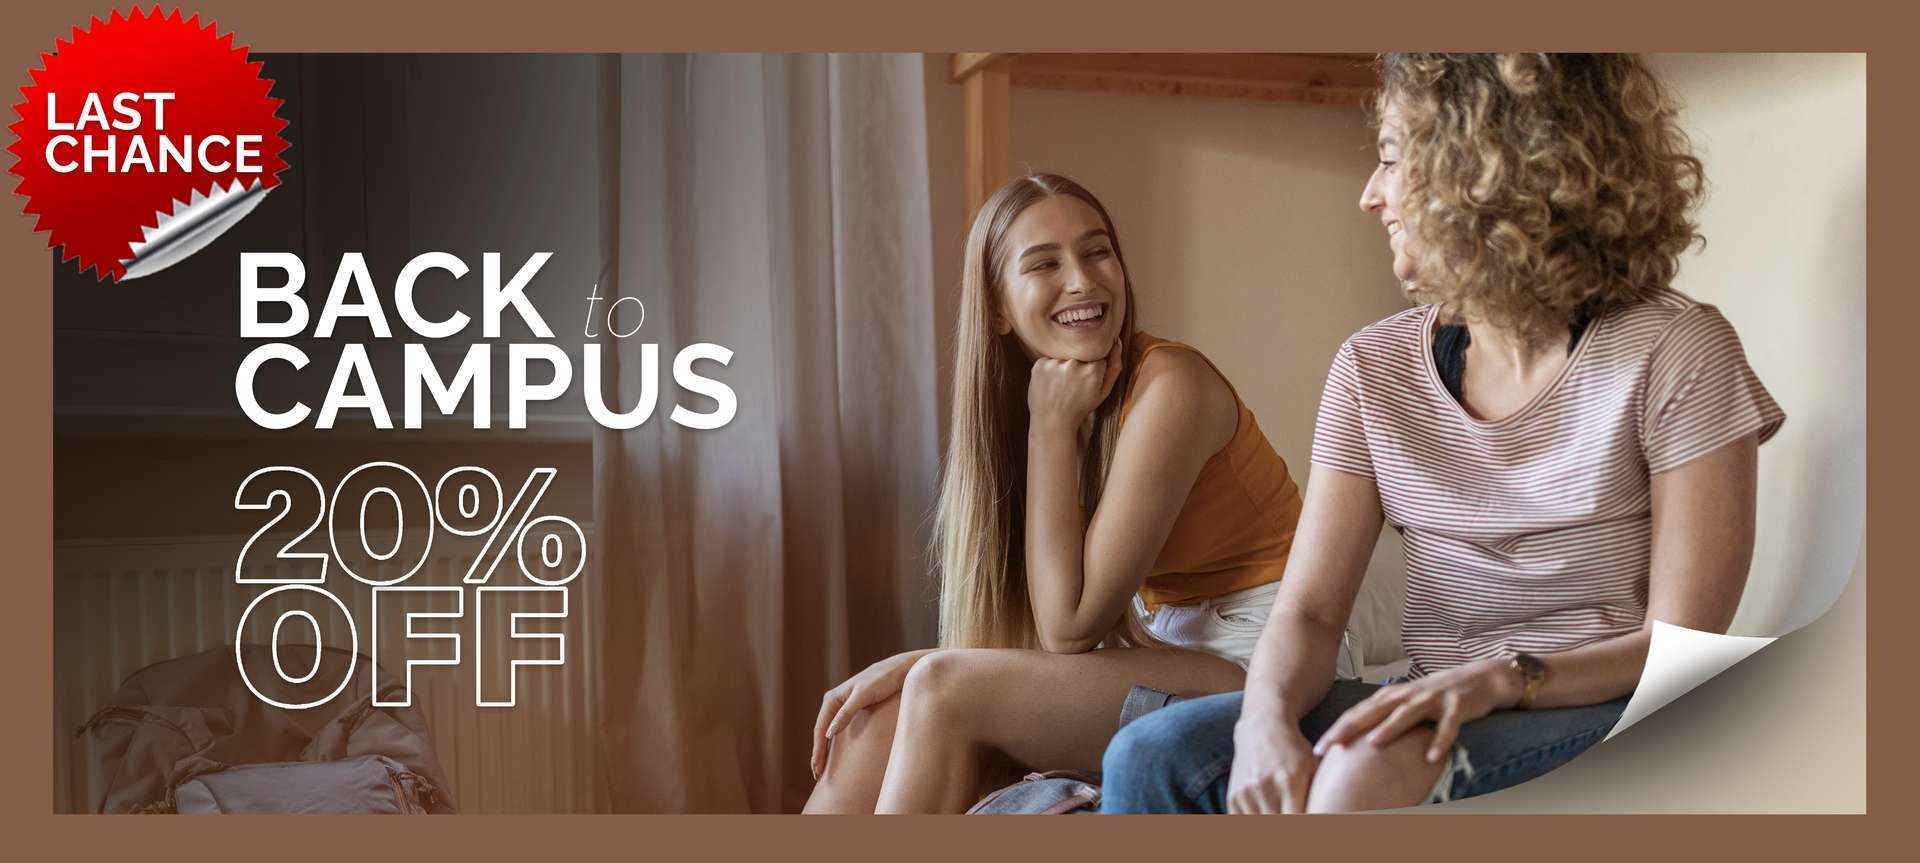 Banner image of two girls in a dorm room